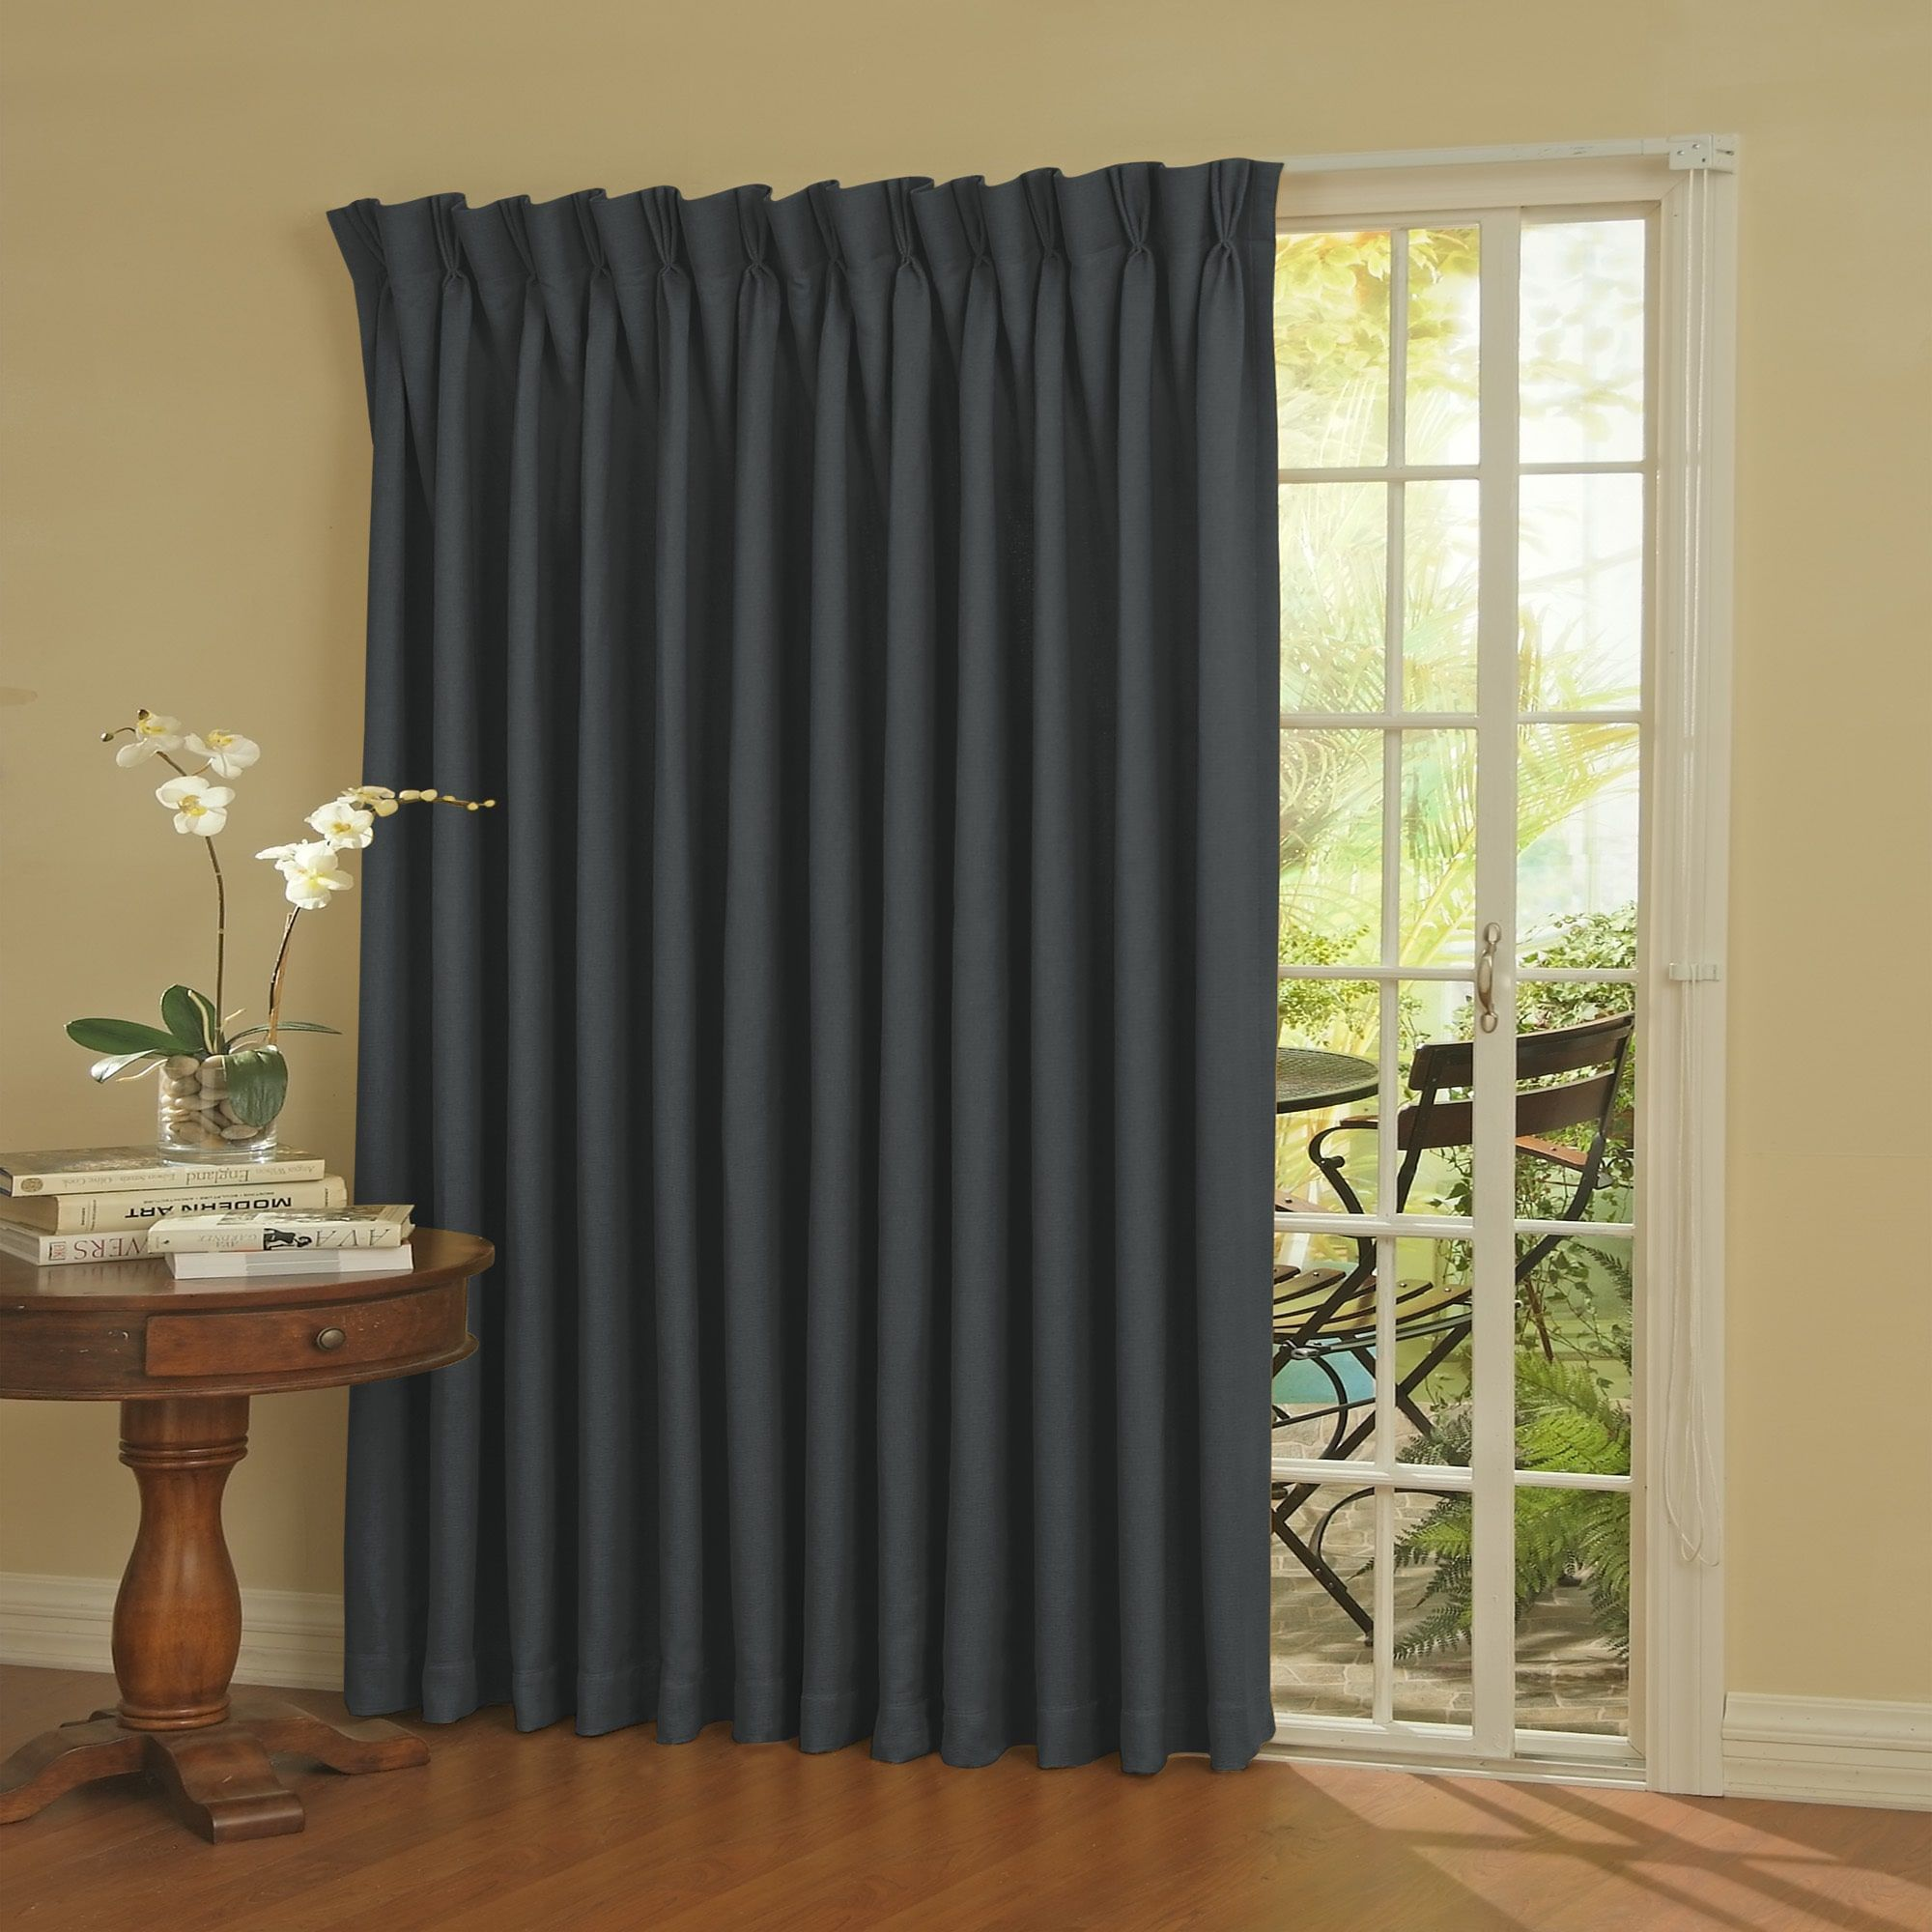 Eclipse thermal blackout patio door curtain panel products